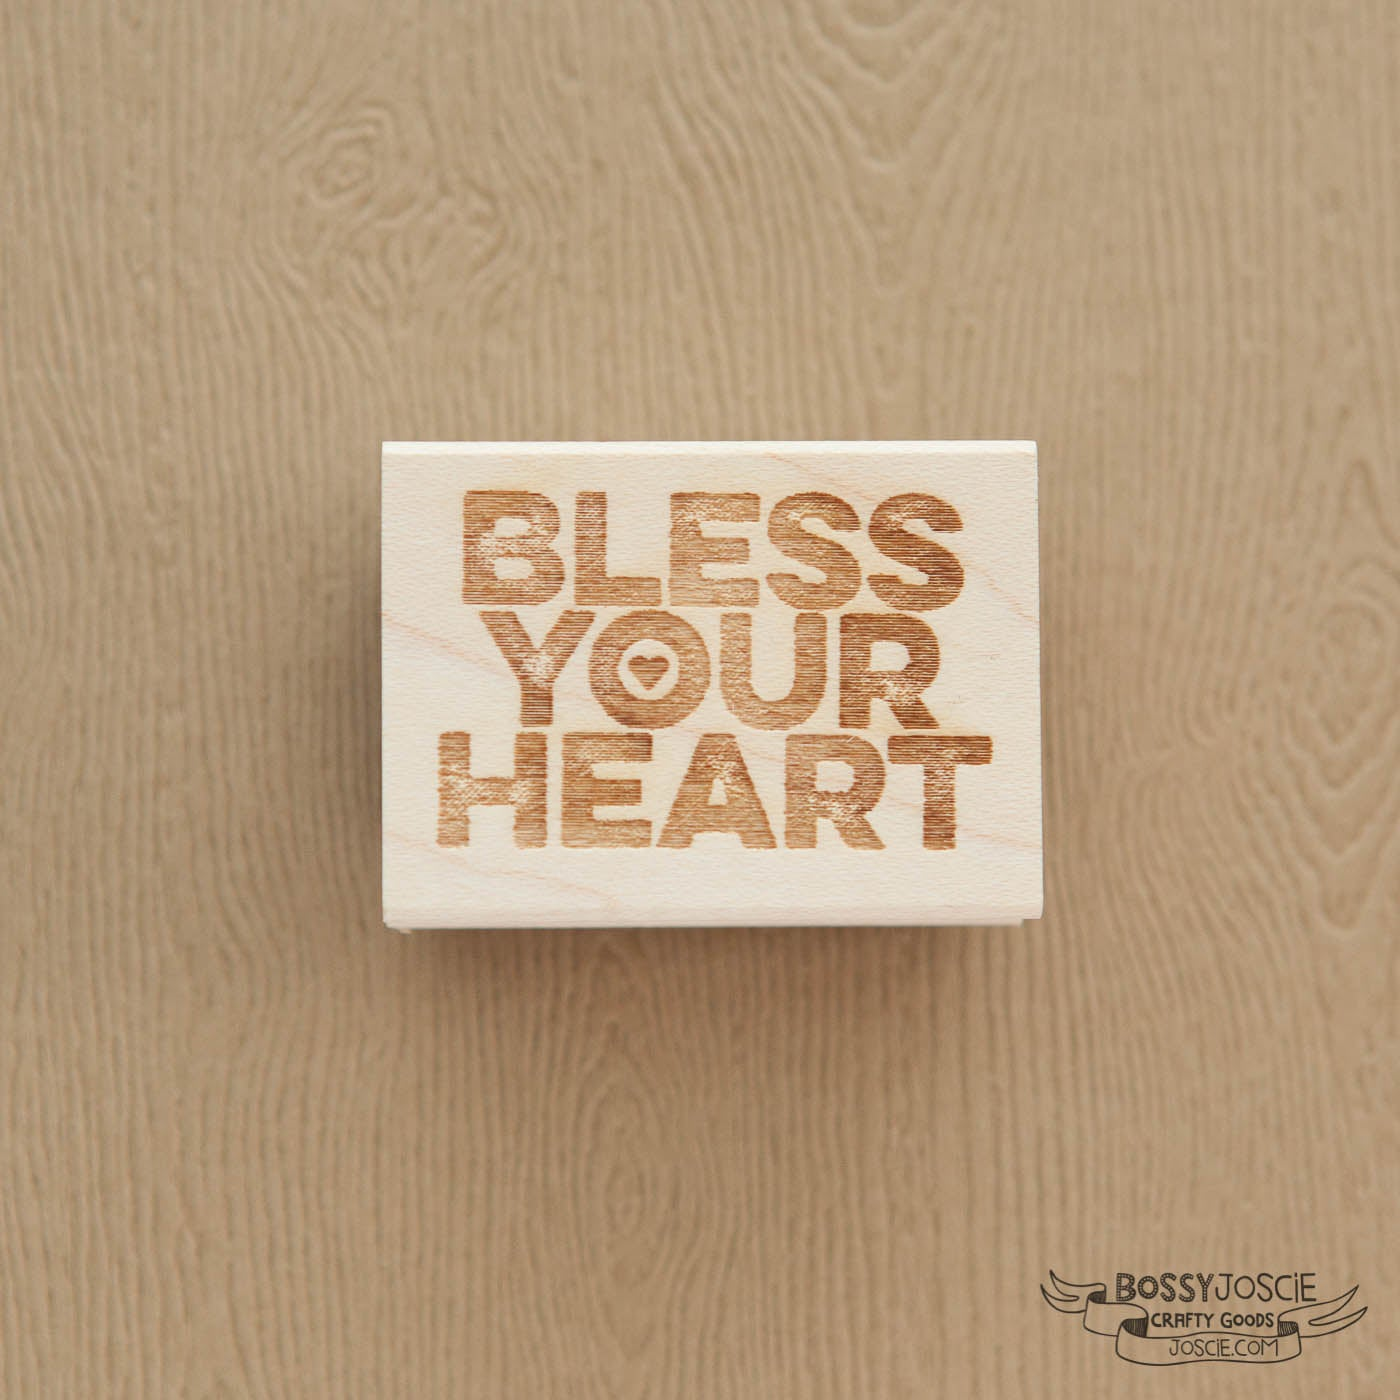 Image of Bless Your Heart textured Stamp